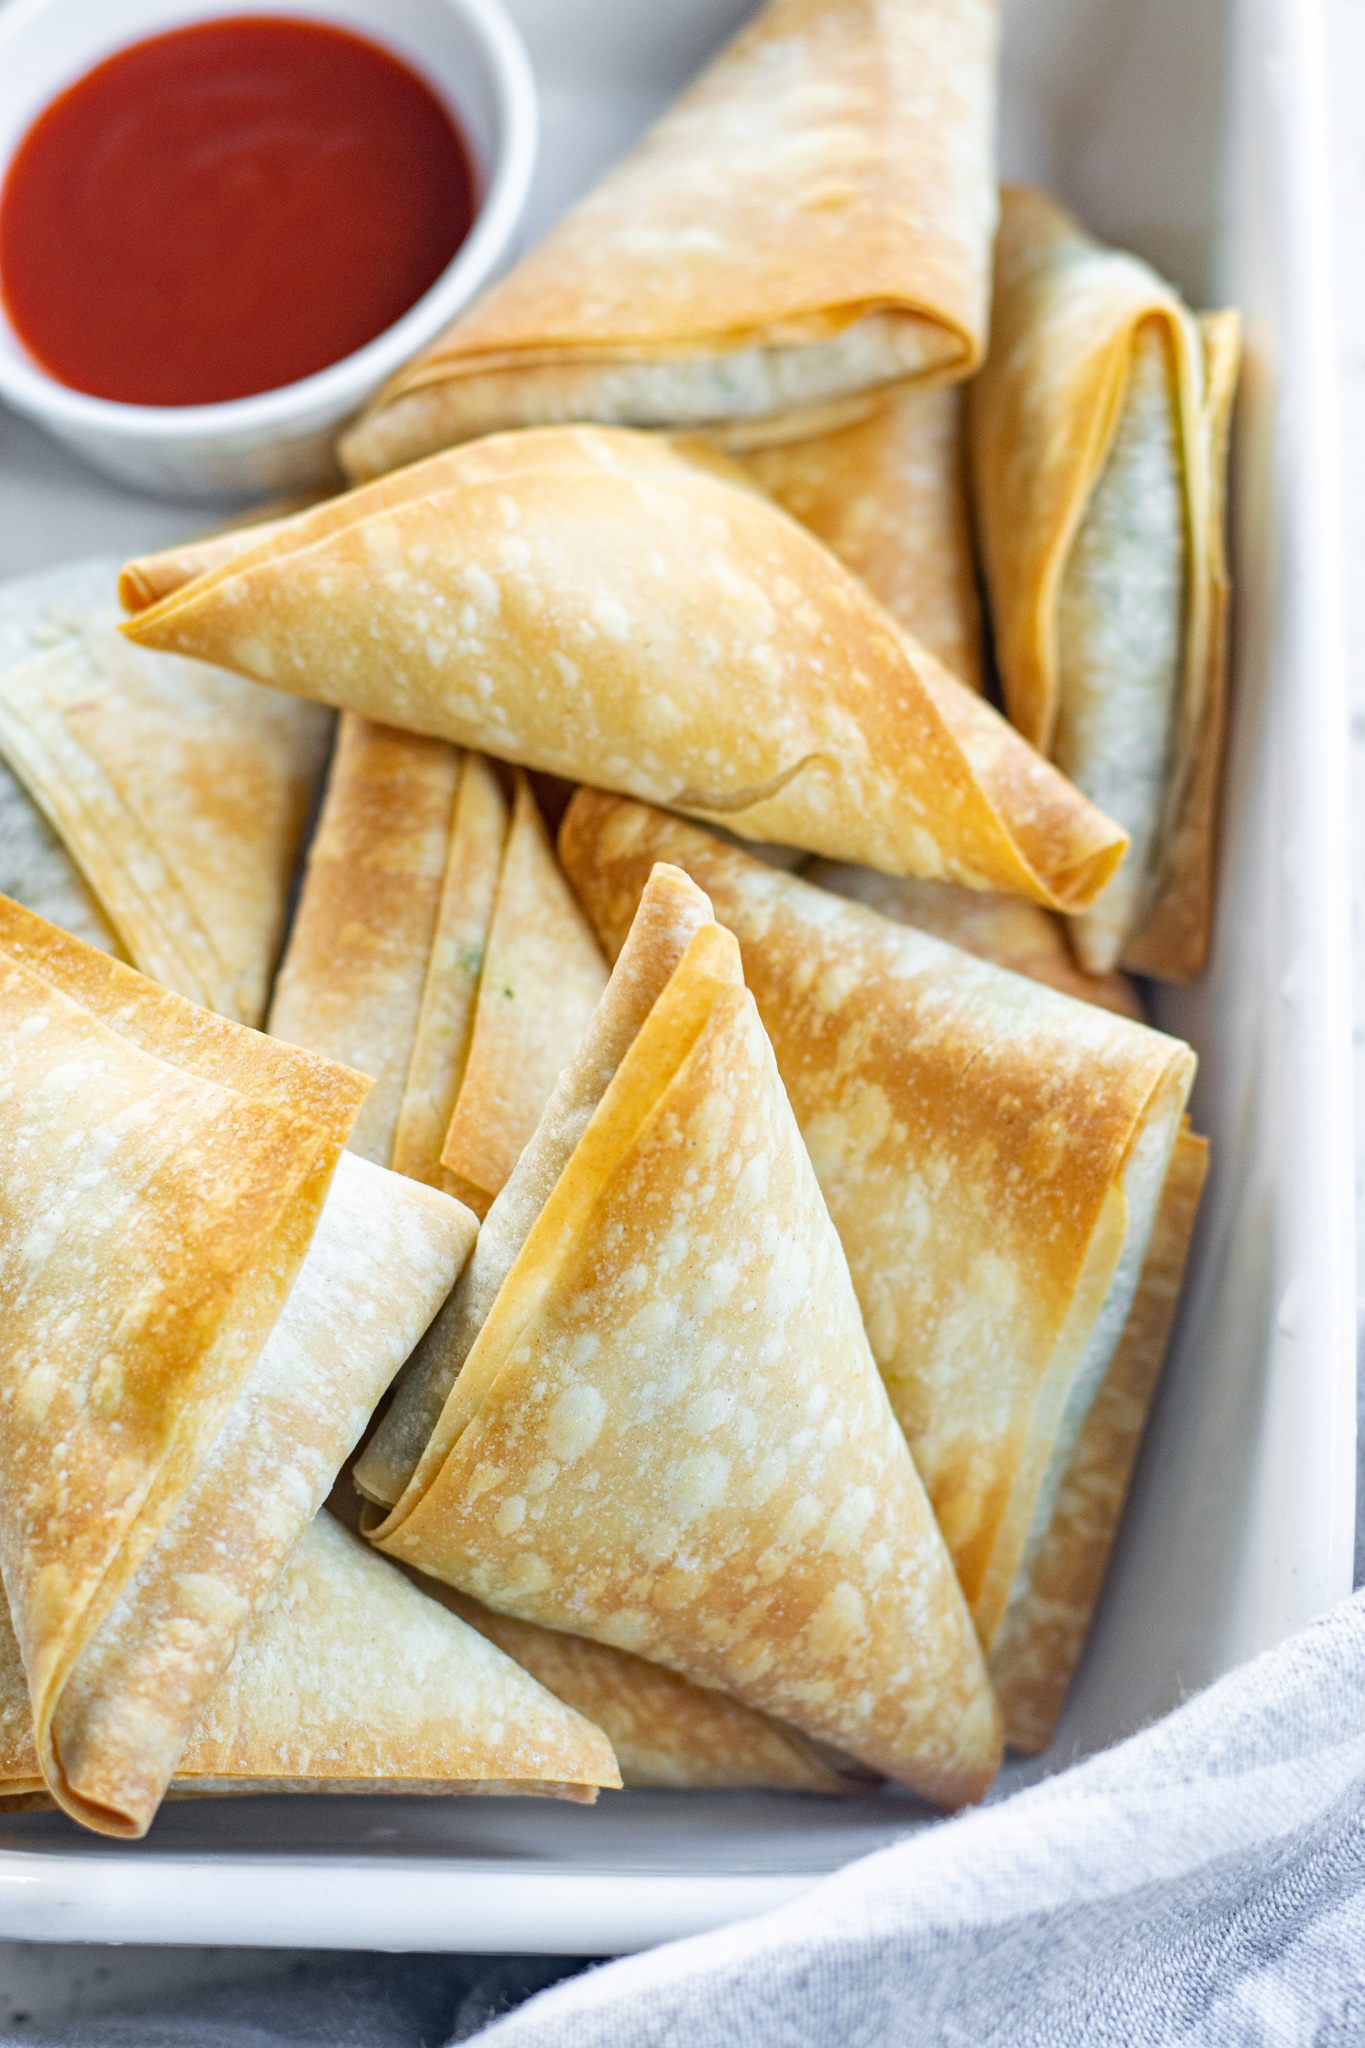 Spanakopita Triangles Recipe with red sauce.